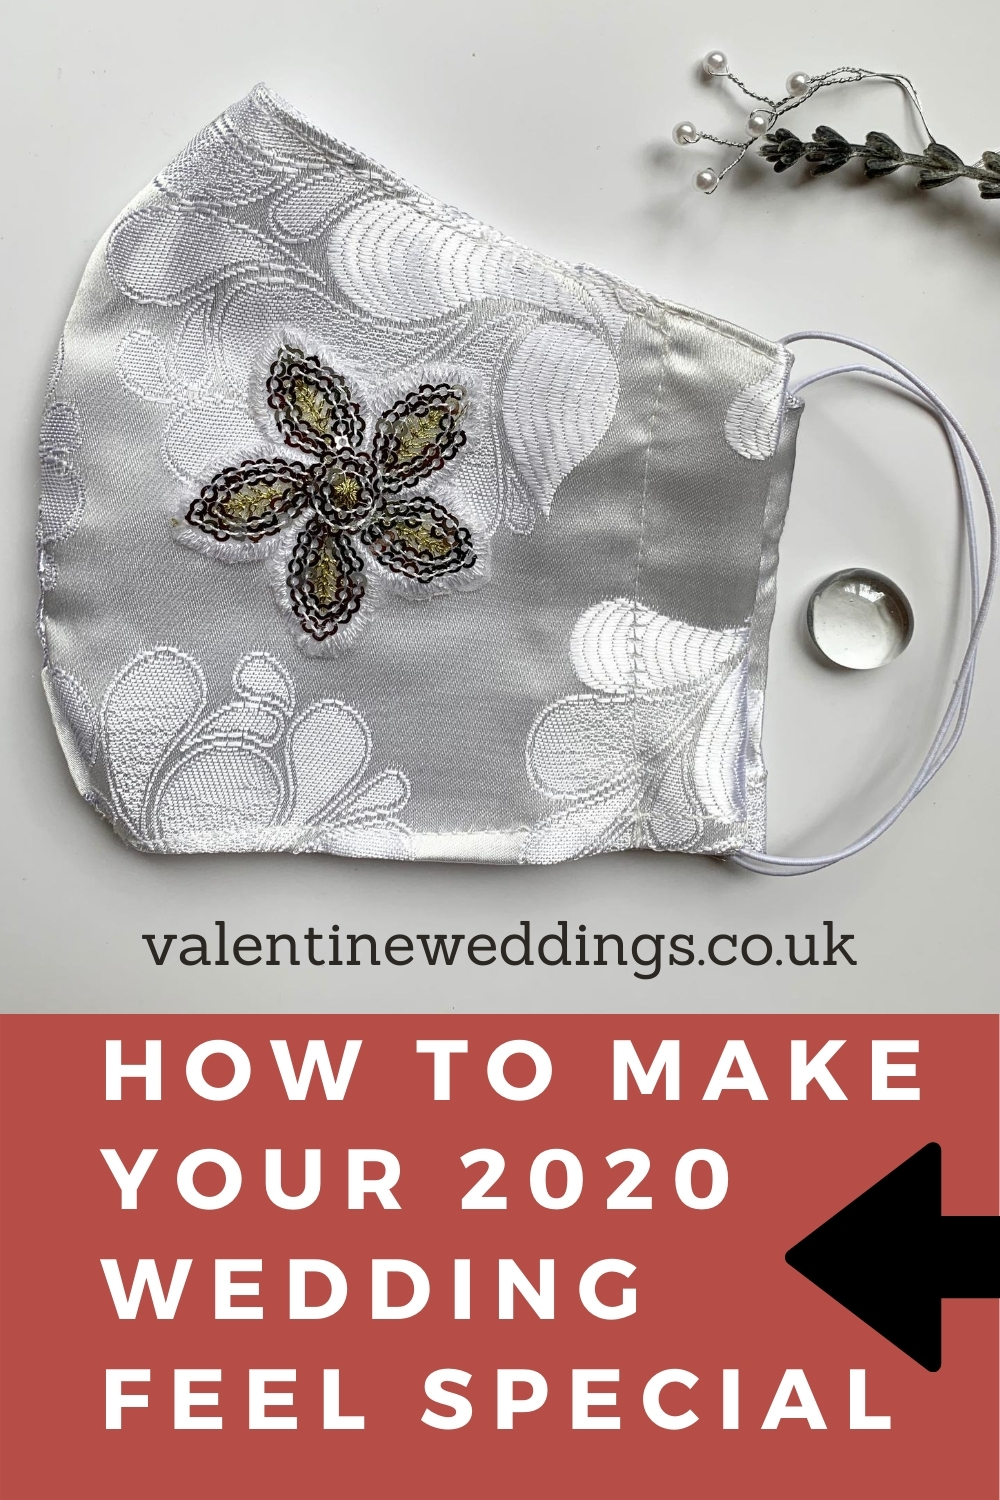 Make Your Covid-19 Lockdown Wedding a special one